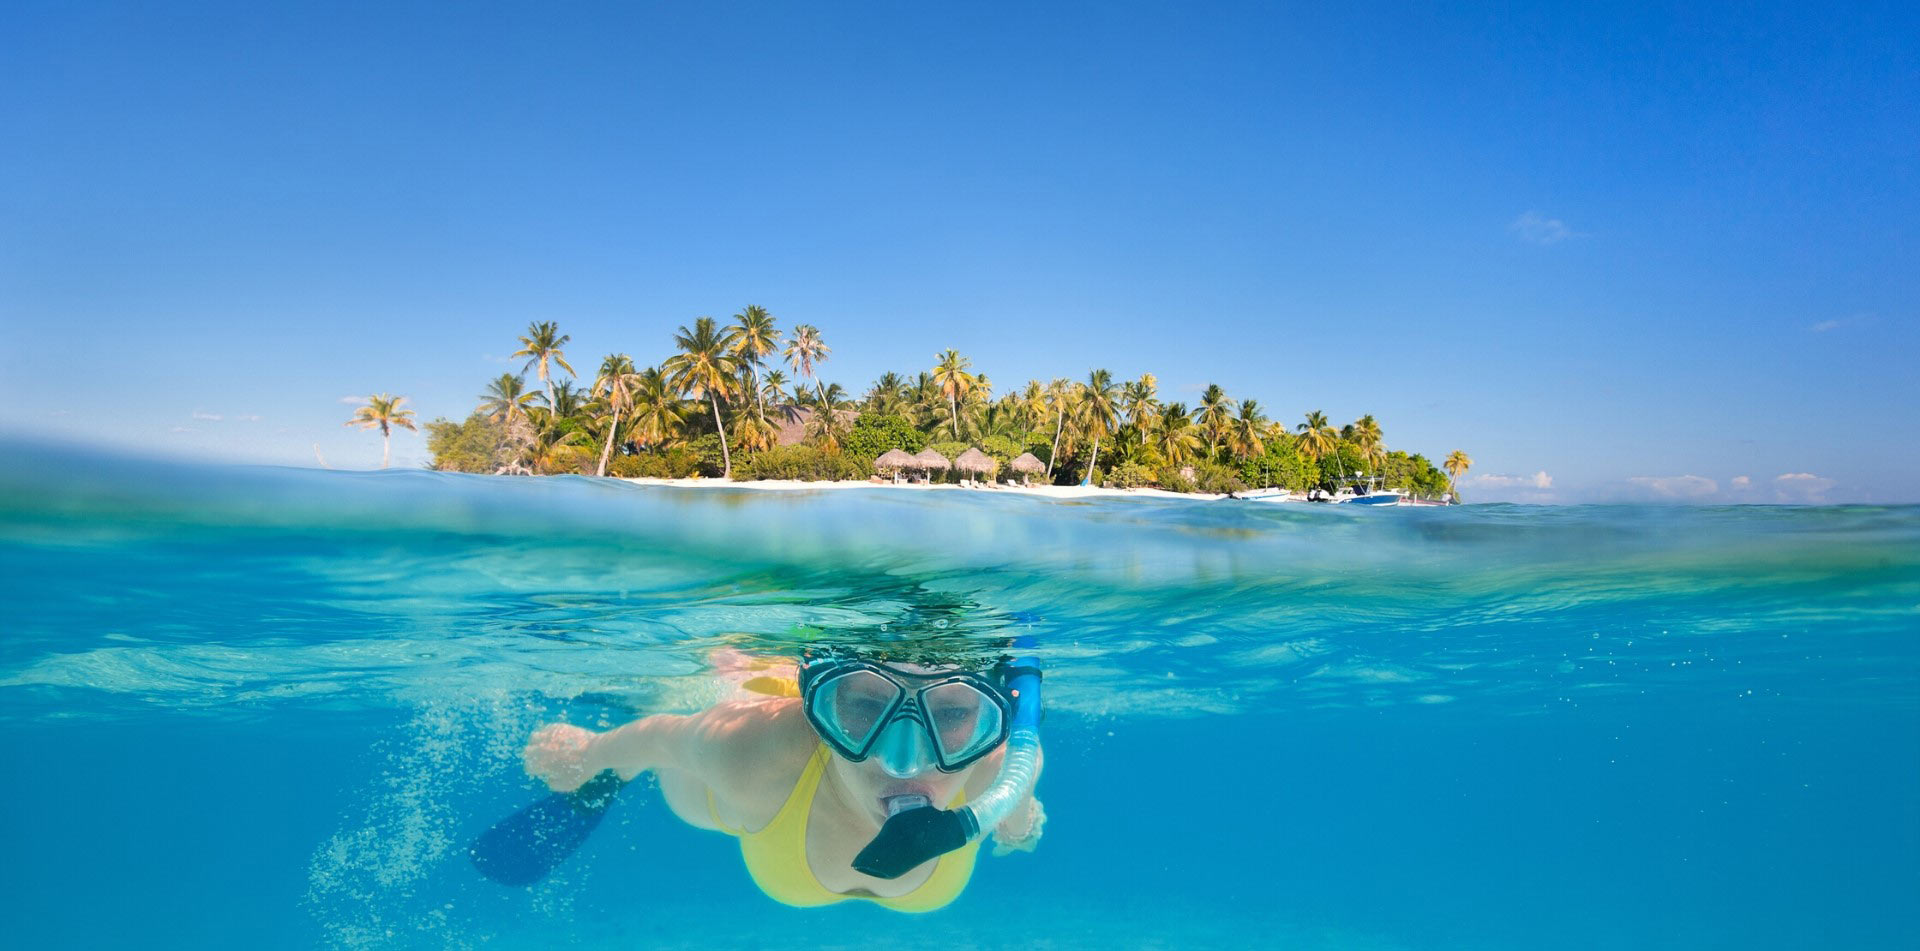 South Pacific Tahiti woman snorkeling clear blue water lush tropical island - luxury vacation destinations